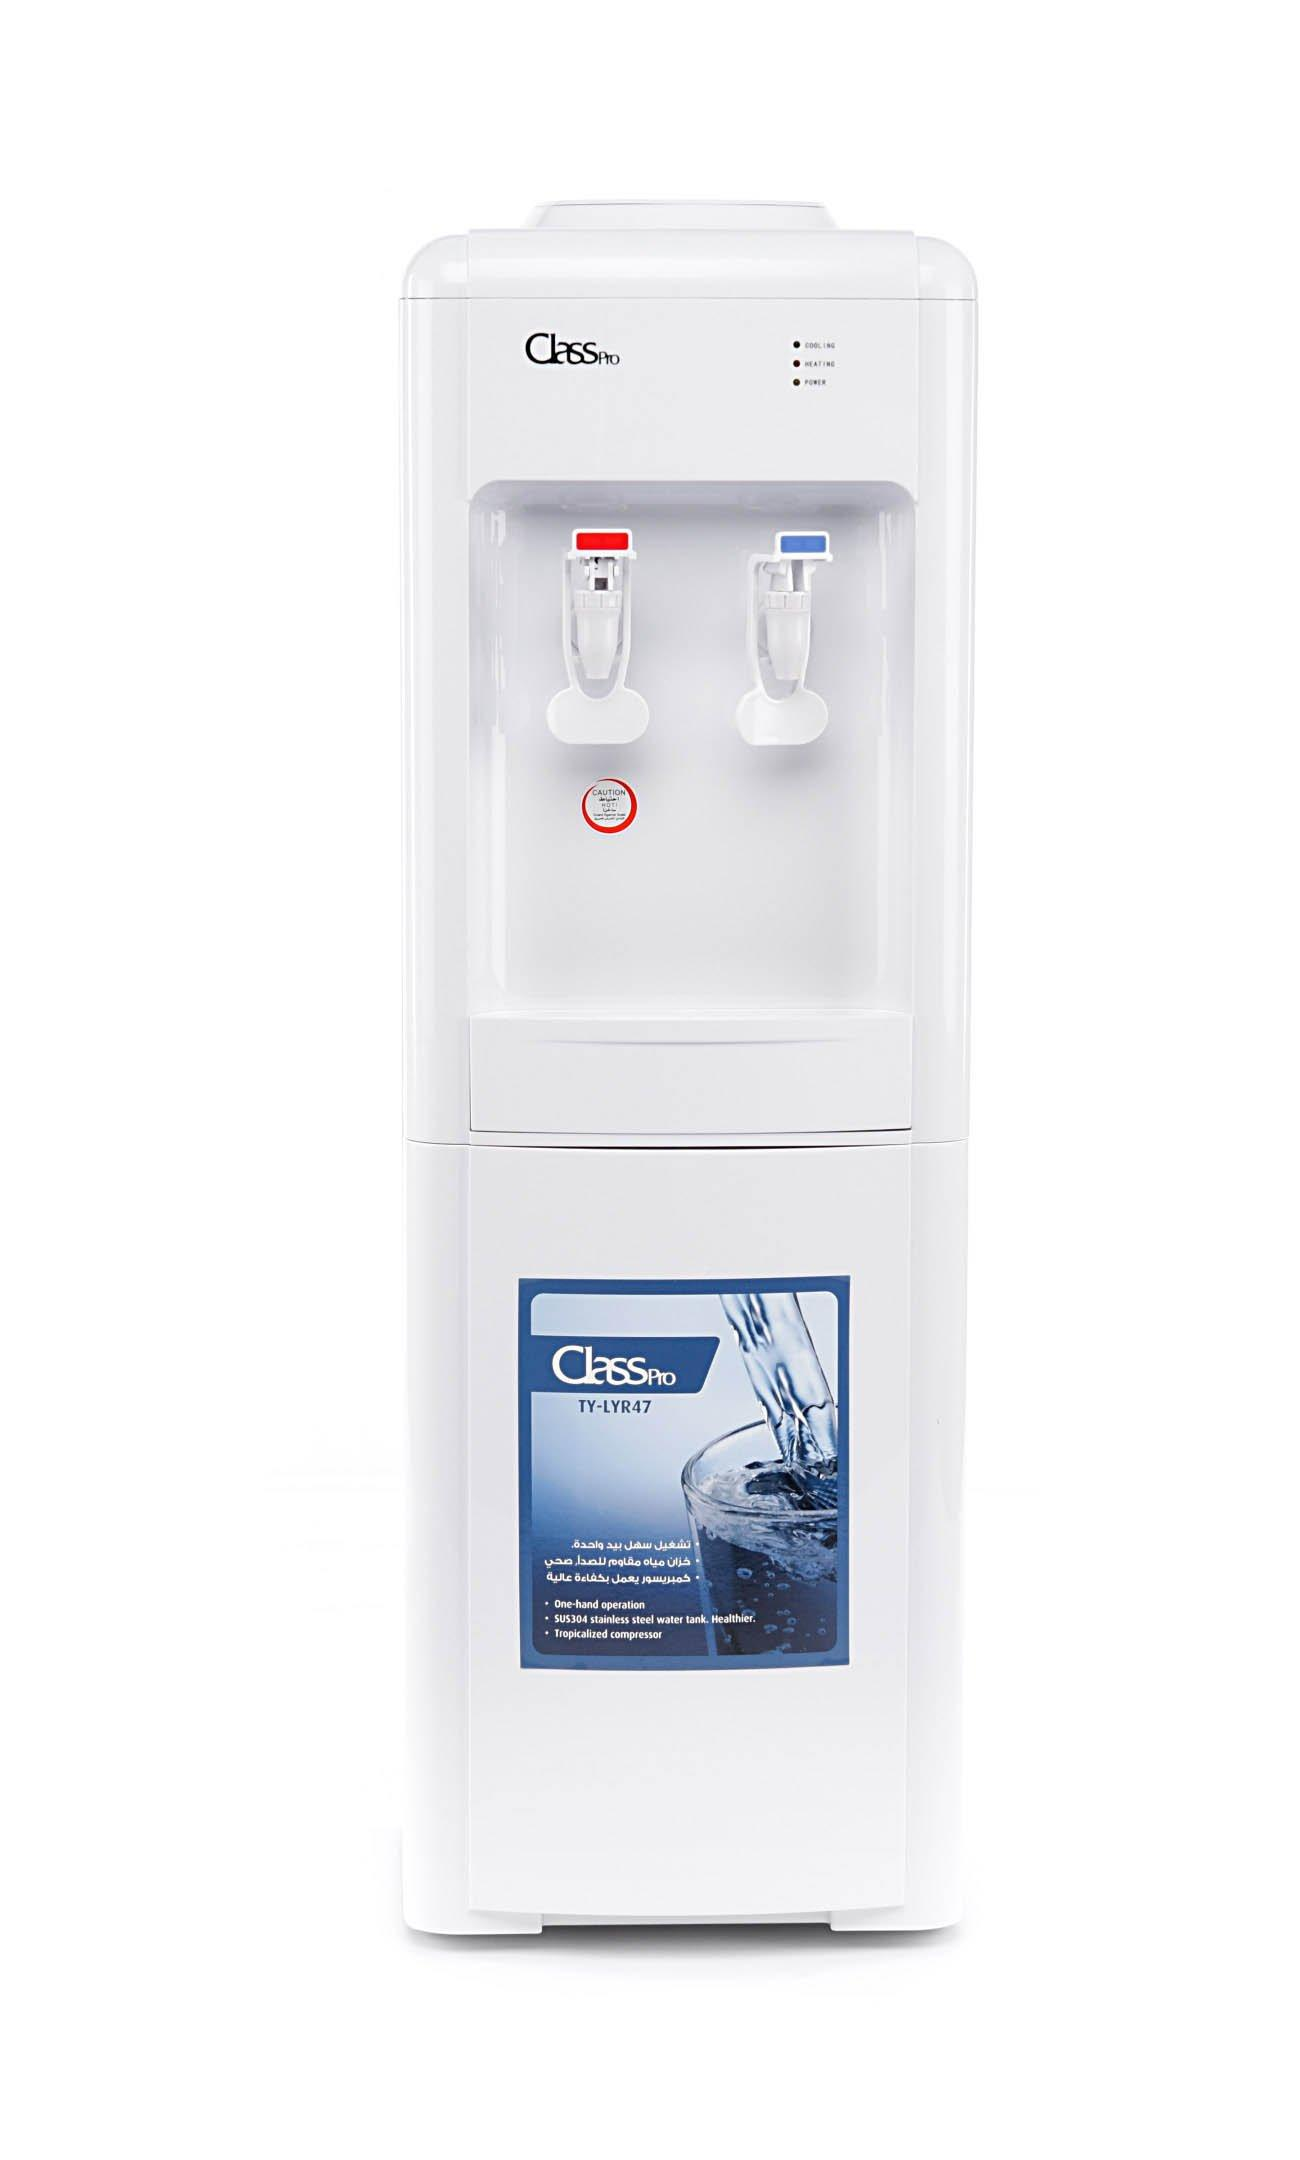 ClassPro Standing Model Water Dispenser Hot and Cold Water Push Tap